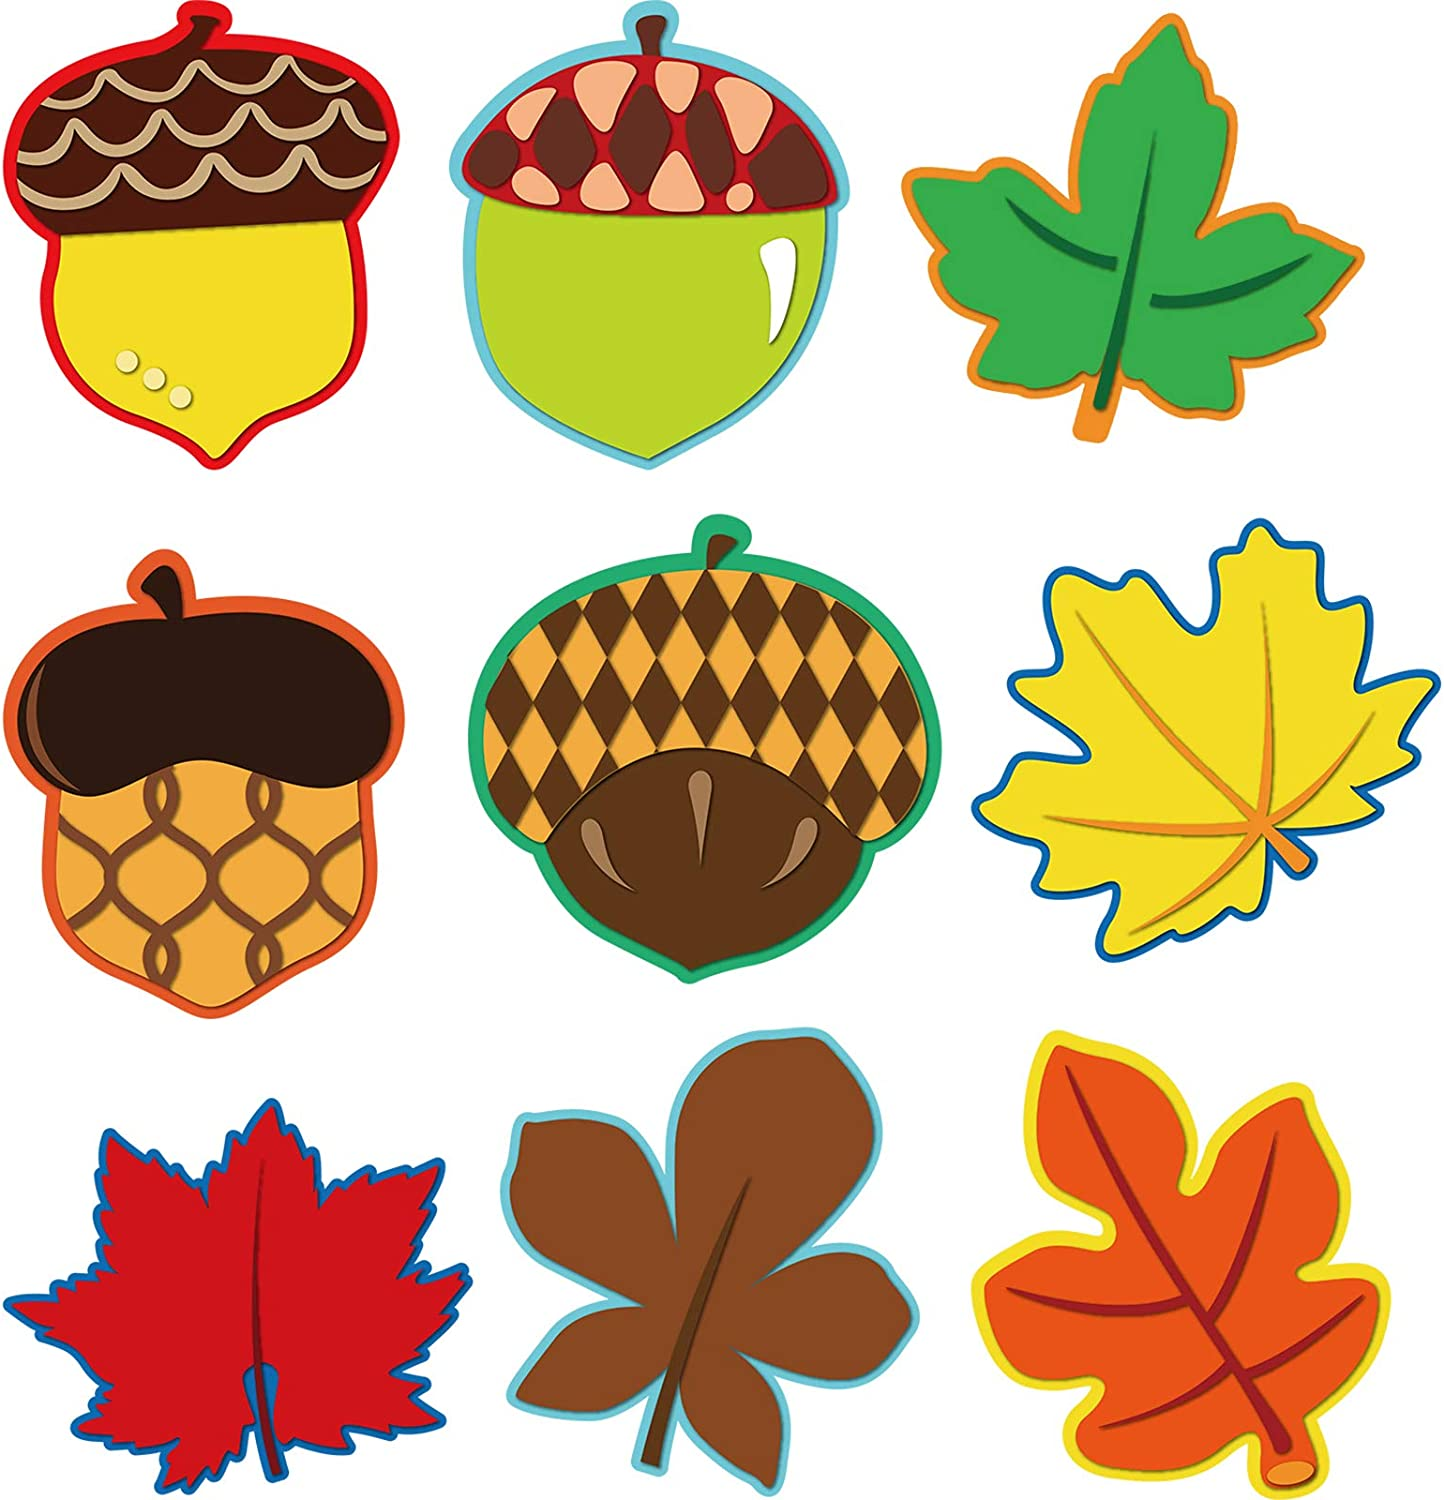 Amazon Com 45 Pieces Colorful Maple Leaves And Acorns Cut Outs Versatile Classroom Decoration With Glue Point Dots For Thanksgiving Bulletin Board Classroom School Fall Theme Party 5 9 X 5 9 Inch Office Products